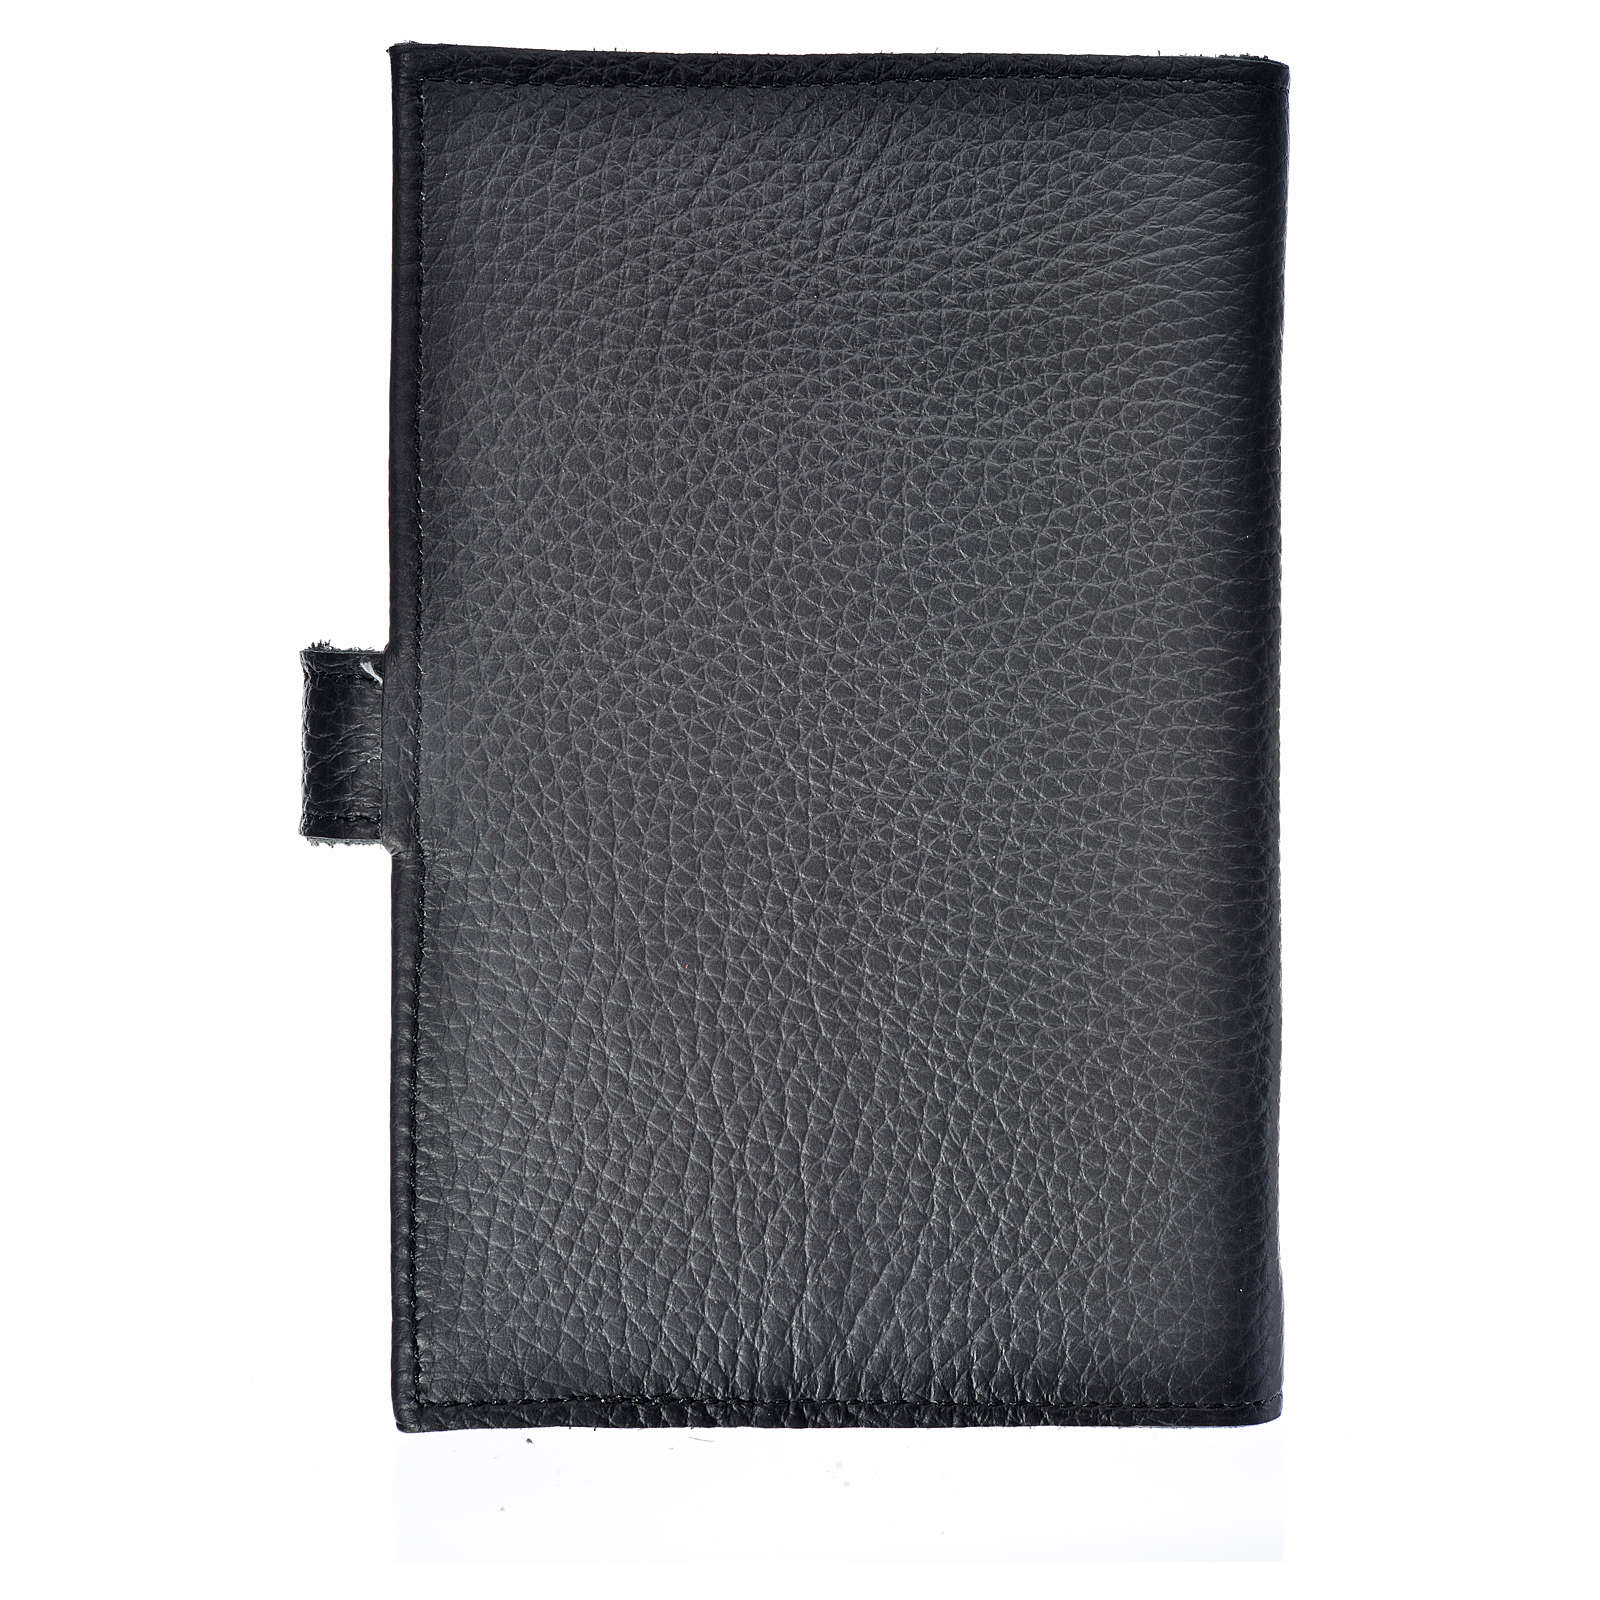 Bible cover black bonded leather Our Lady of Kiko 4